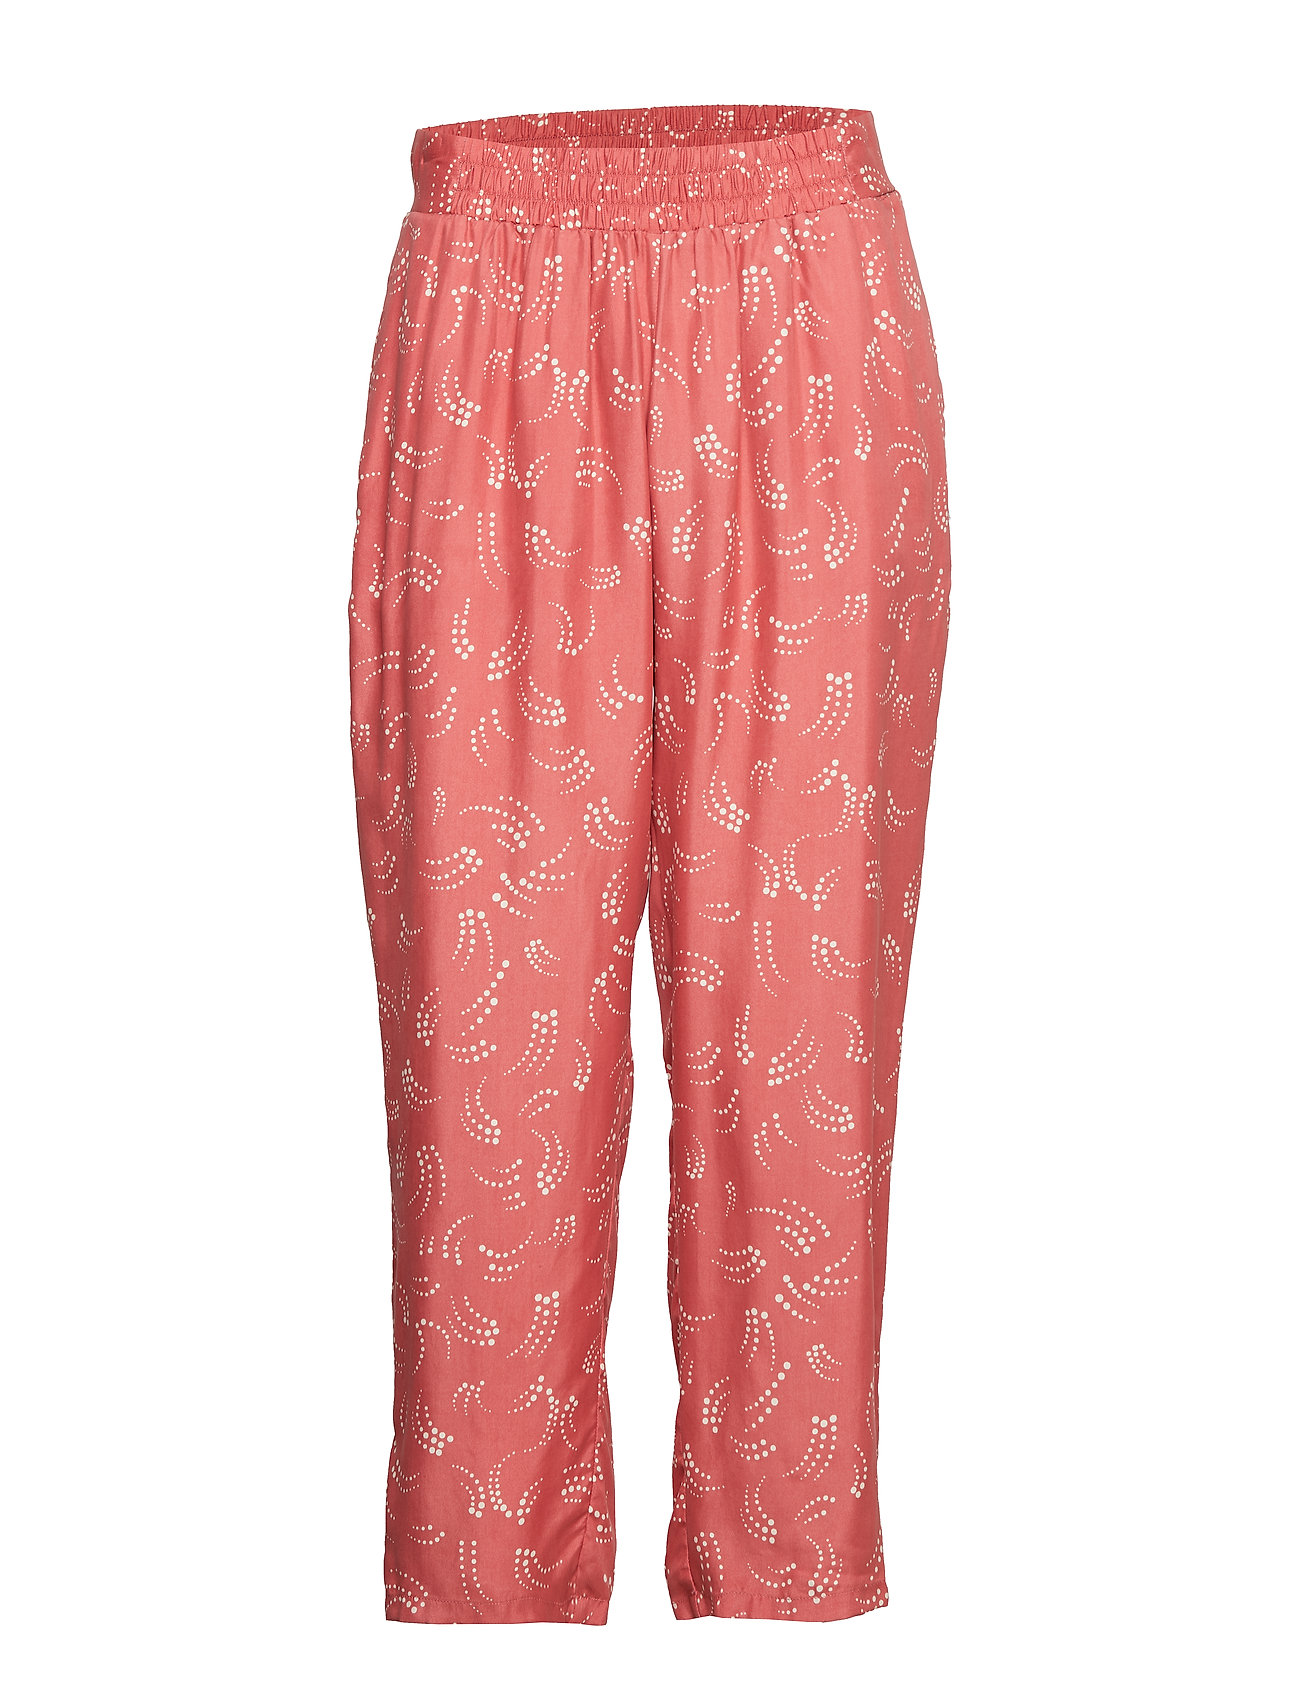 Coster Copenhagen Pants in dot print w. elastic waist - CANYON ROSE